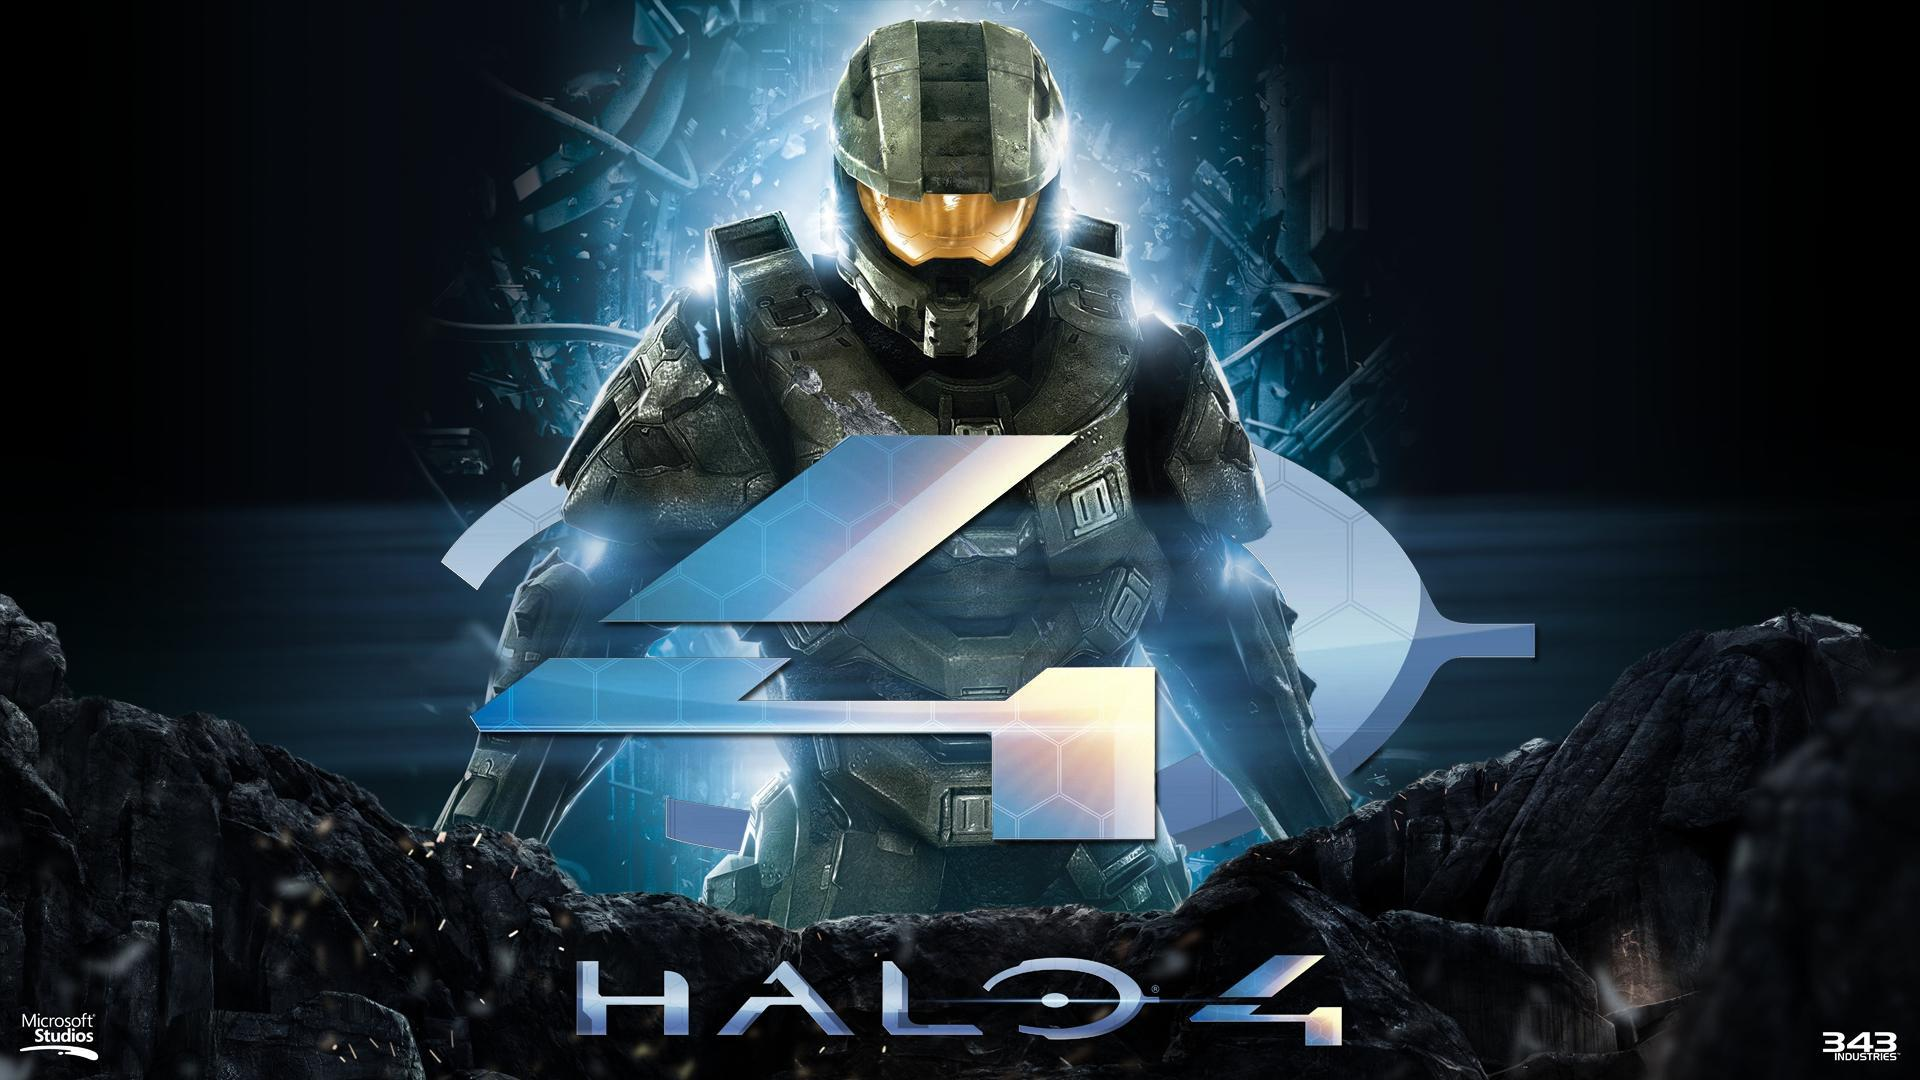 Cool Halo 4 Wallpapers